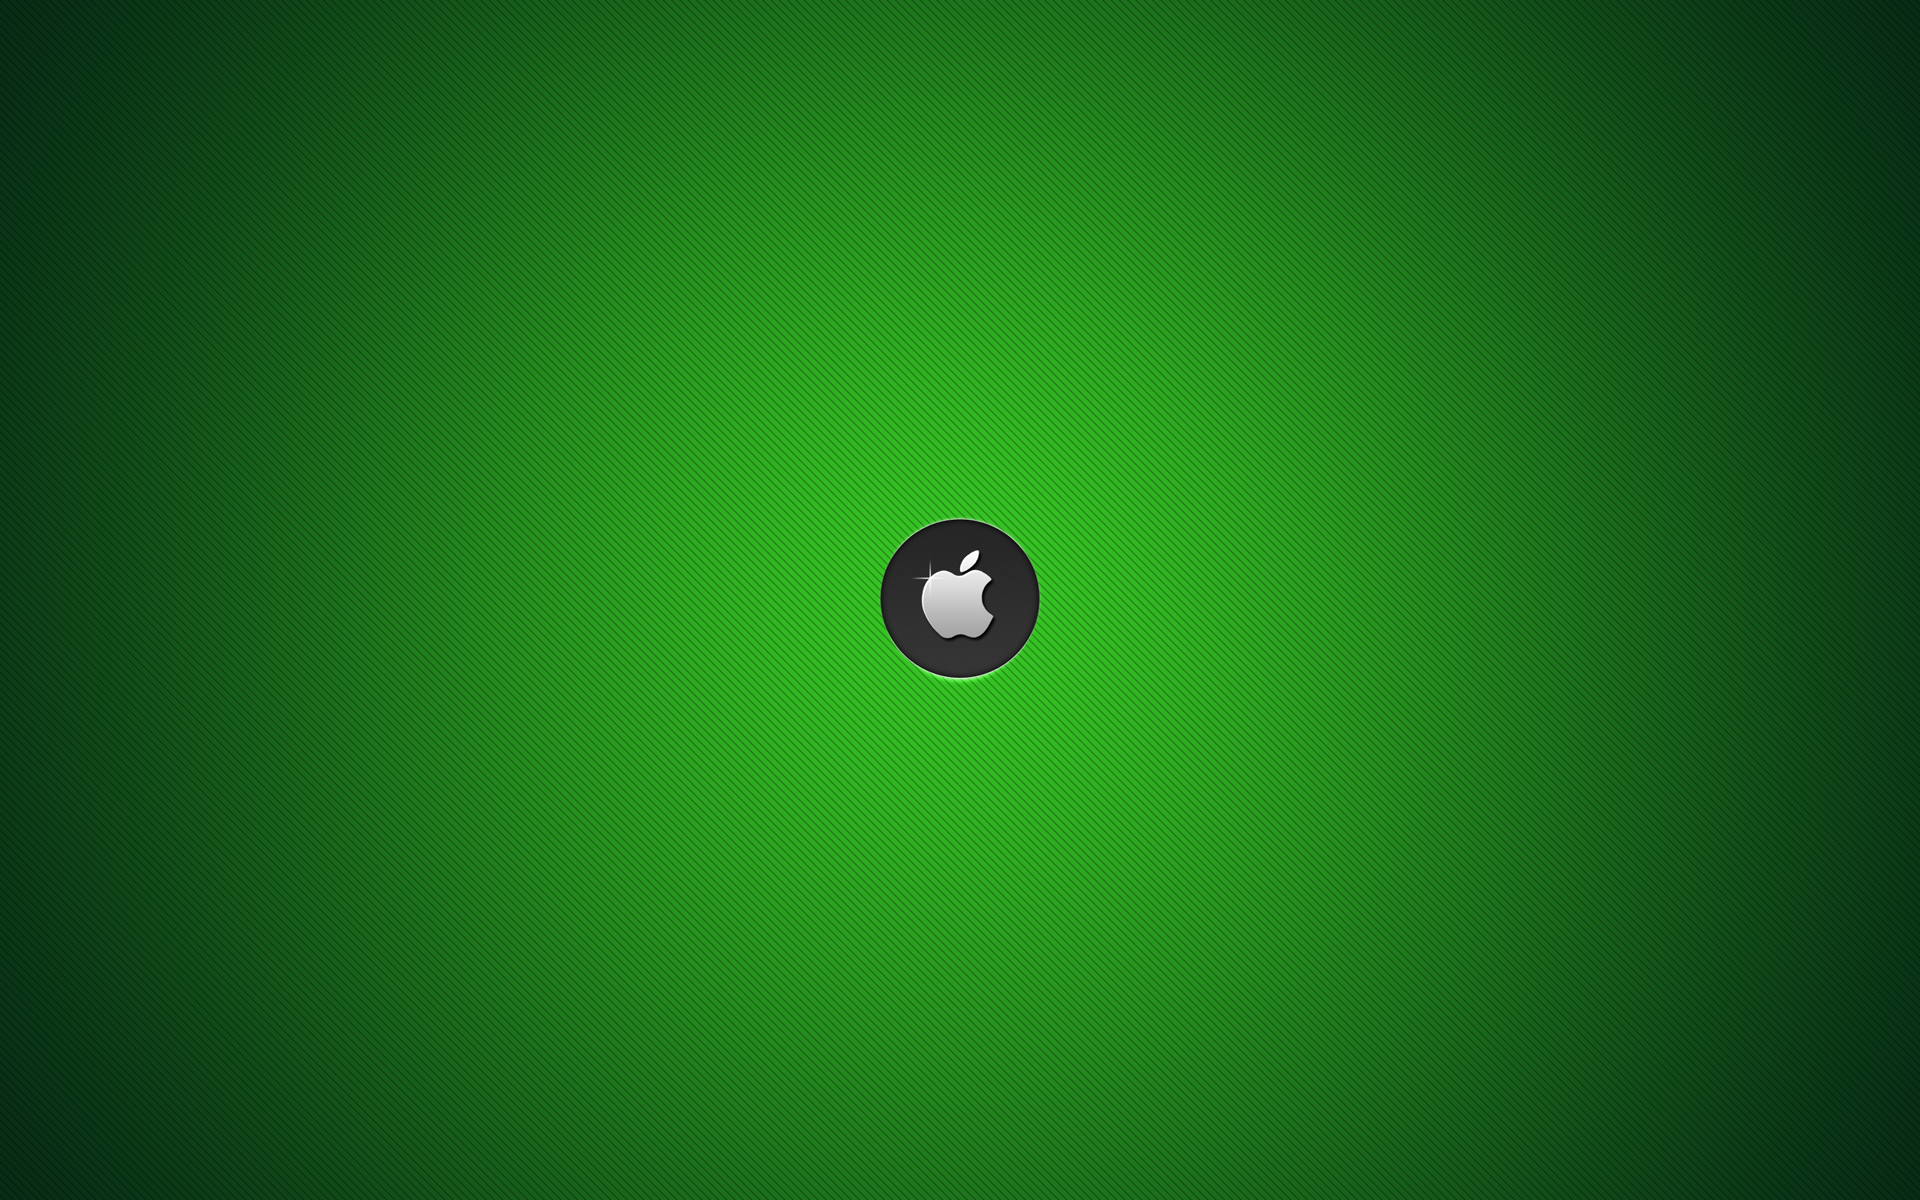 wallpapers manzana verde mac -#main